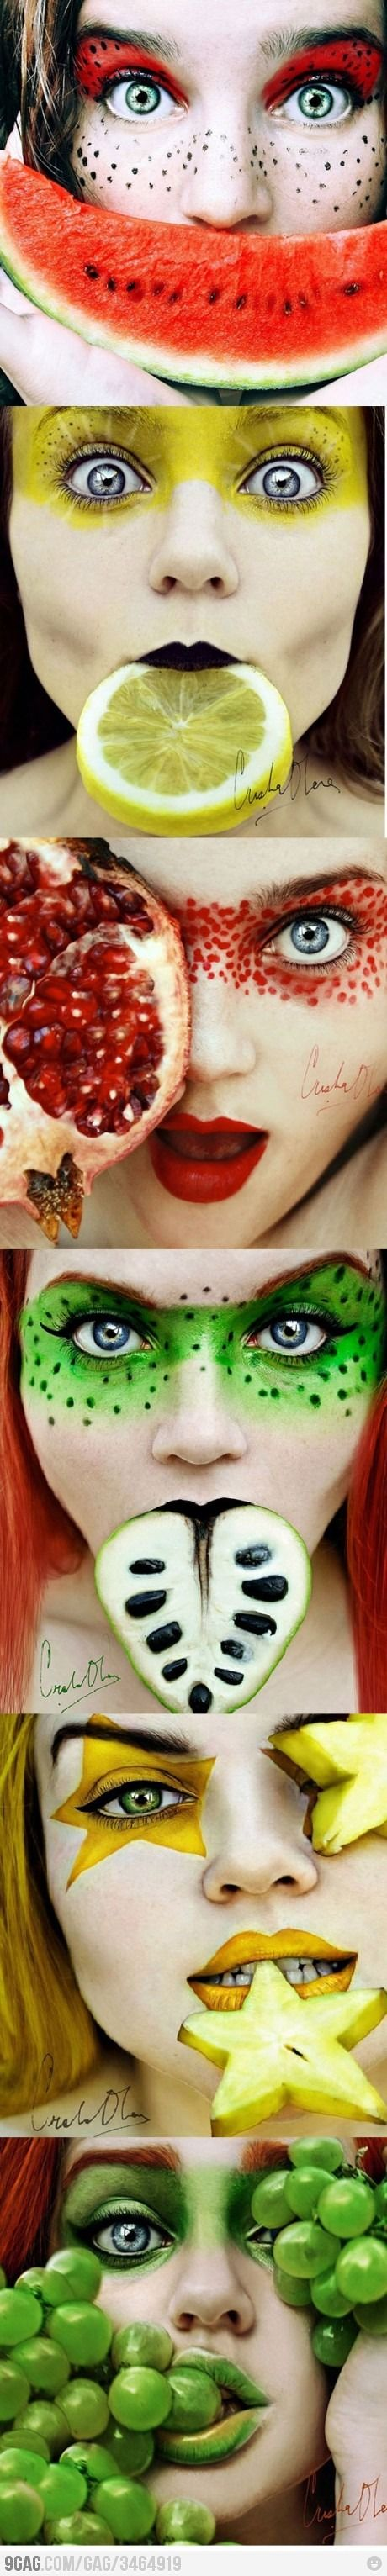 Fruit makeup man